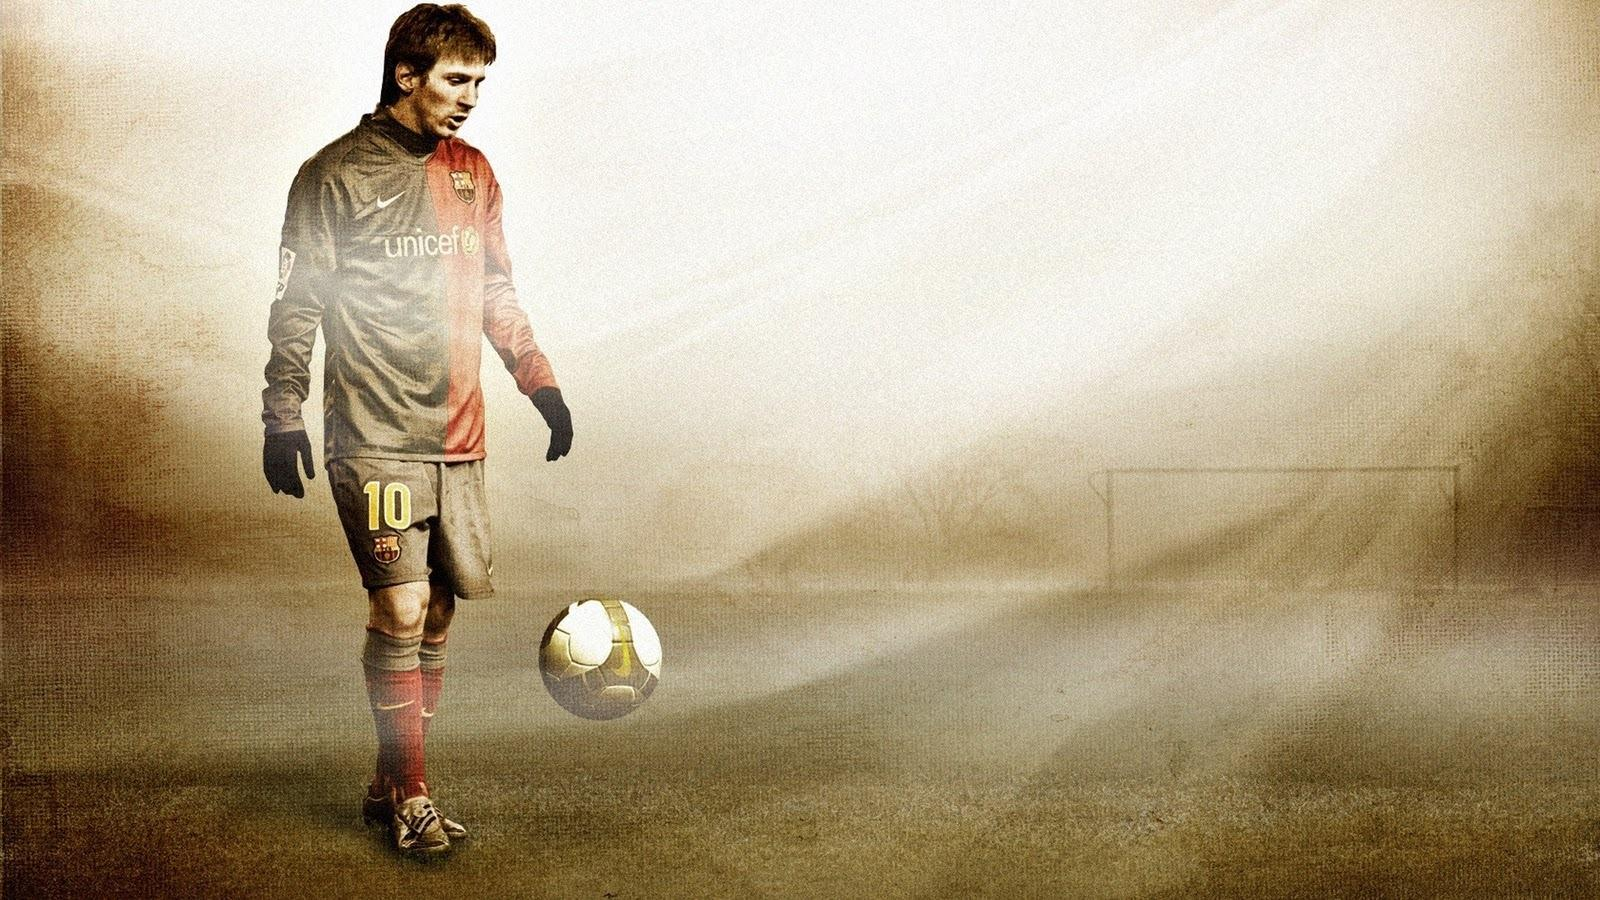 Hd wallpaper messi - Lionel Messi Hd Wallpapers Hd Wallpapers Inn